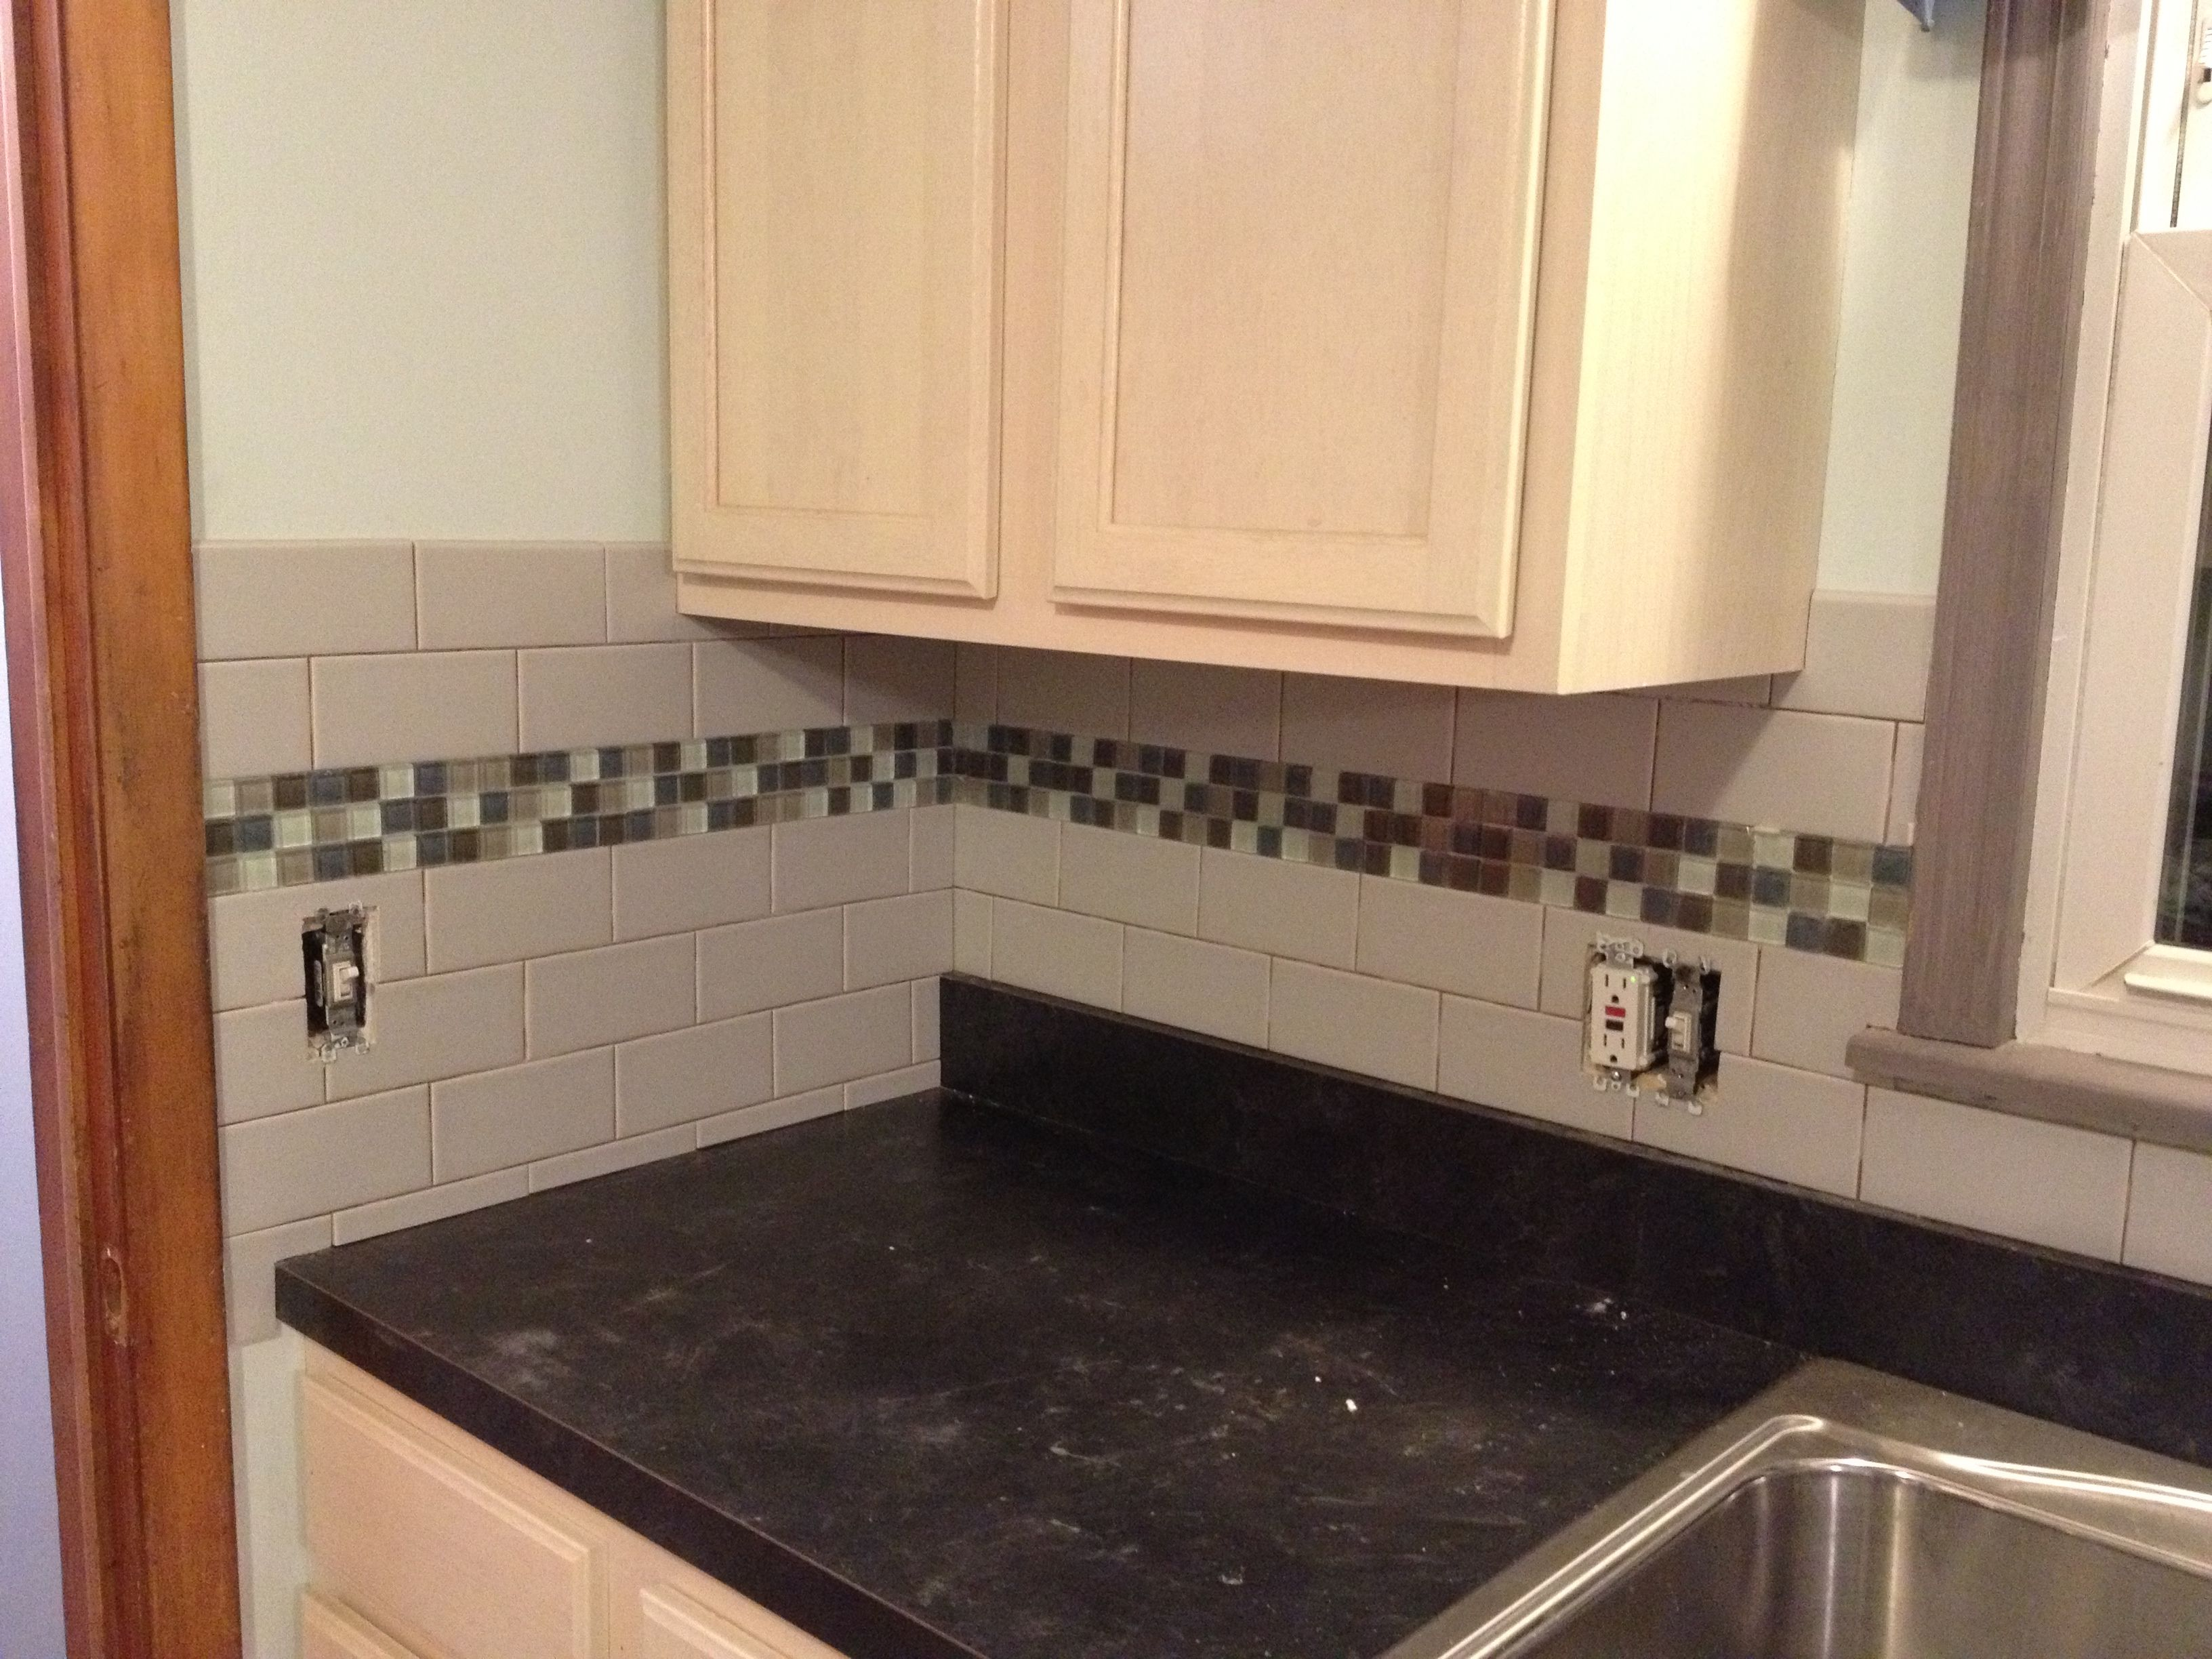 Subway tile backsplash with glass tile accent, love my kitchen even ...